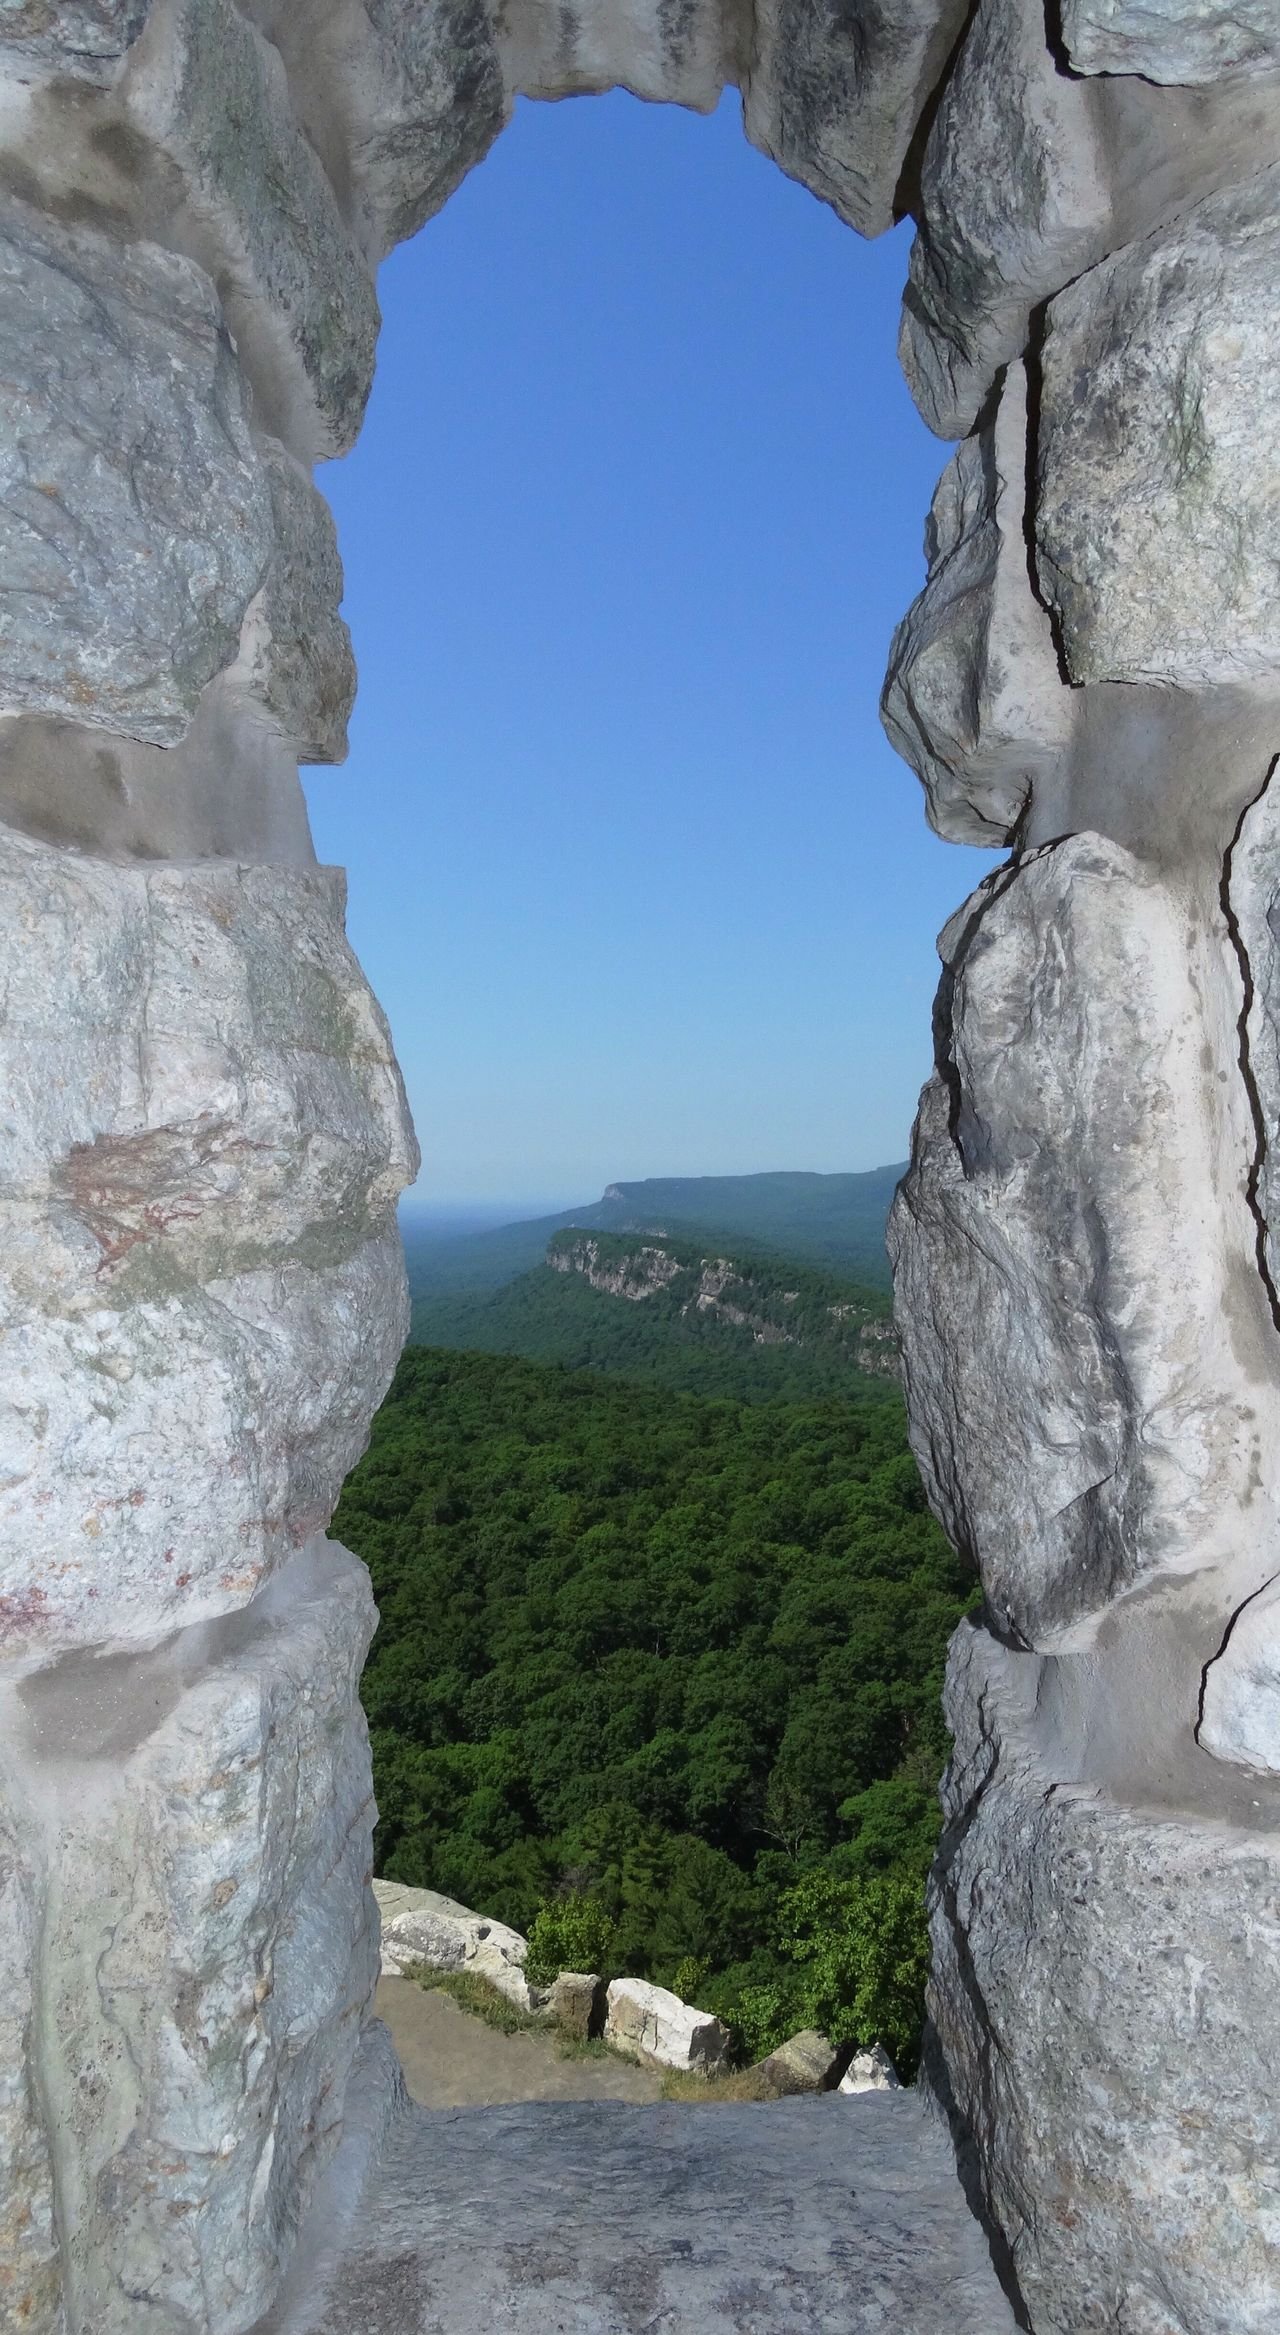 Look with your heart, not with yours eyes. There is no other way to truly see. Rock Formation Geology Rock - Object Nature Beauty In Nature Tranquility Day Scenics Mountain No People Physical Geography Landscape Cliff Sky Clear Sky Travel Destinations Outdoors Tree Mohonk Preserve